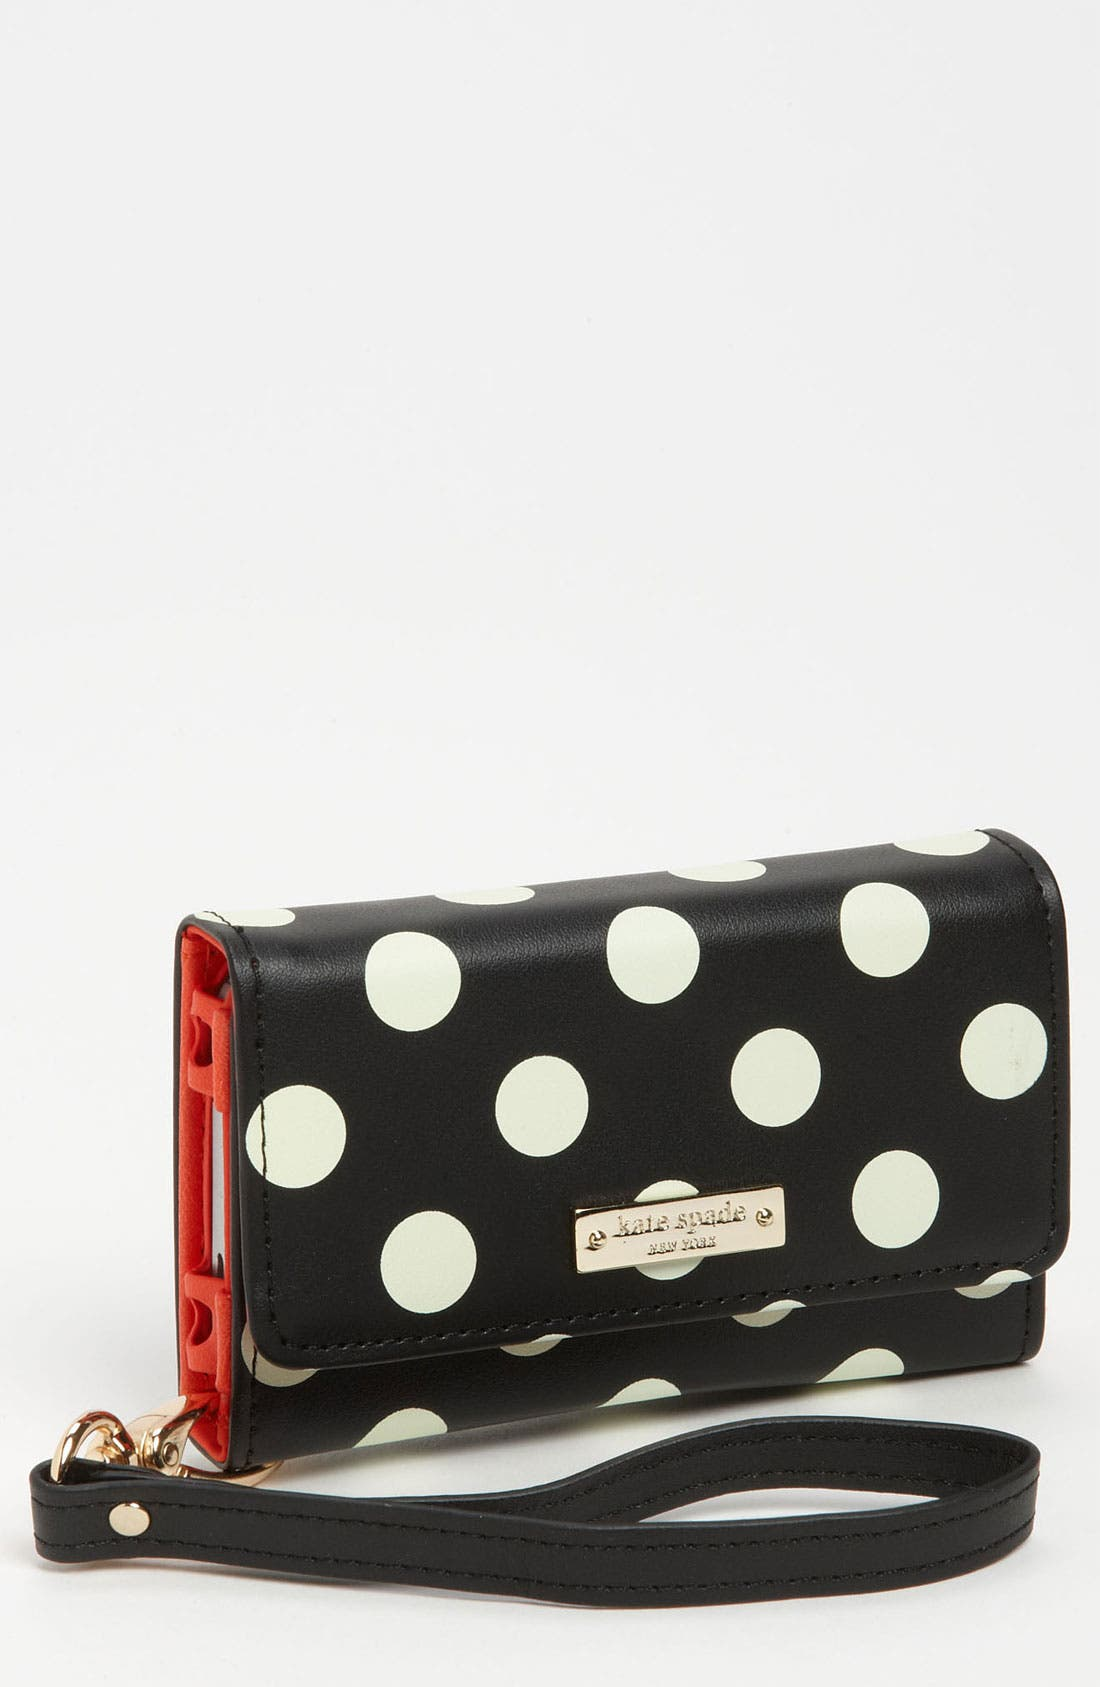 Main Image - kate spade new york 'la pavillion' iPhone wristlet